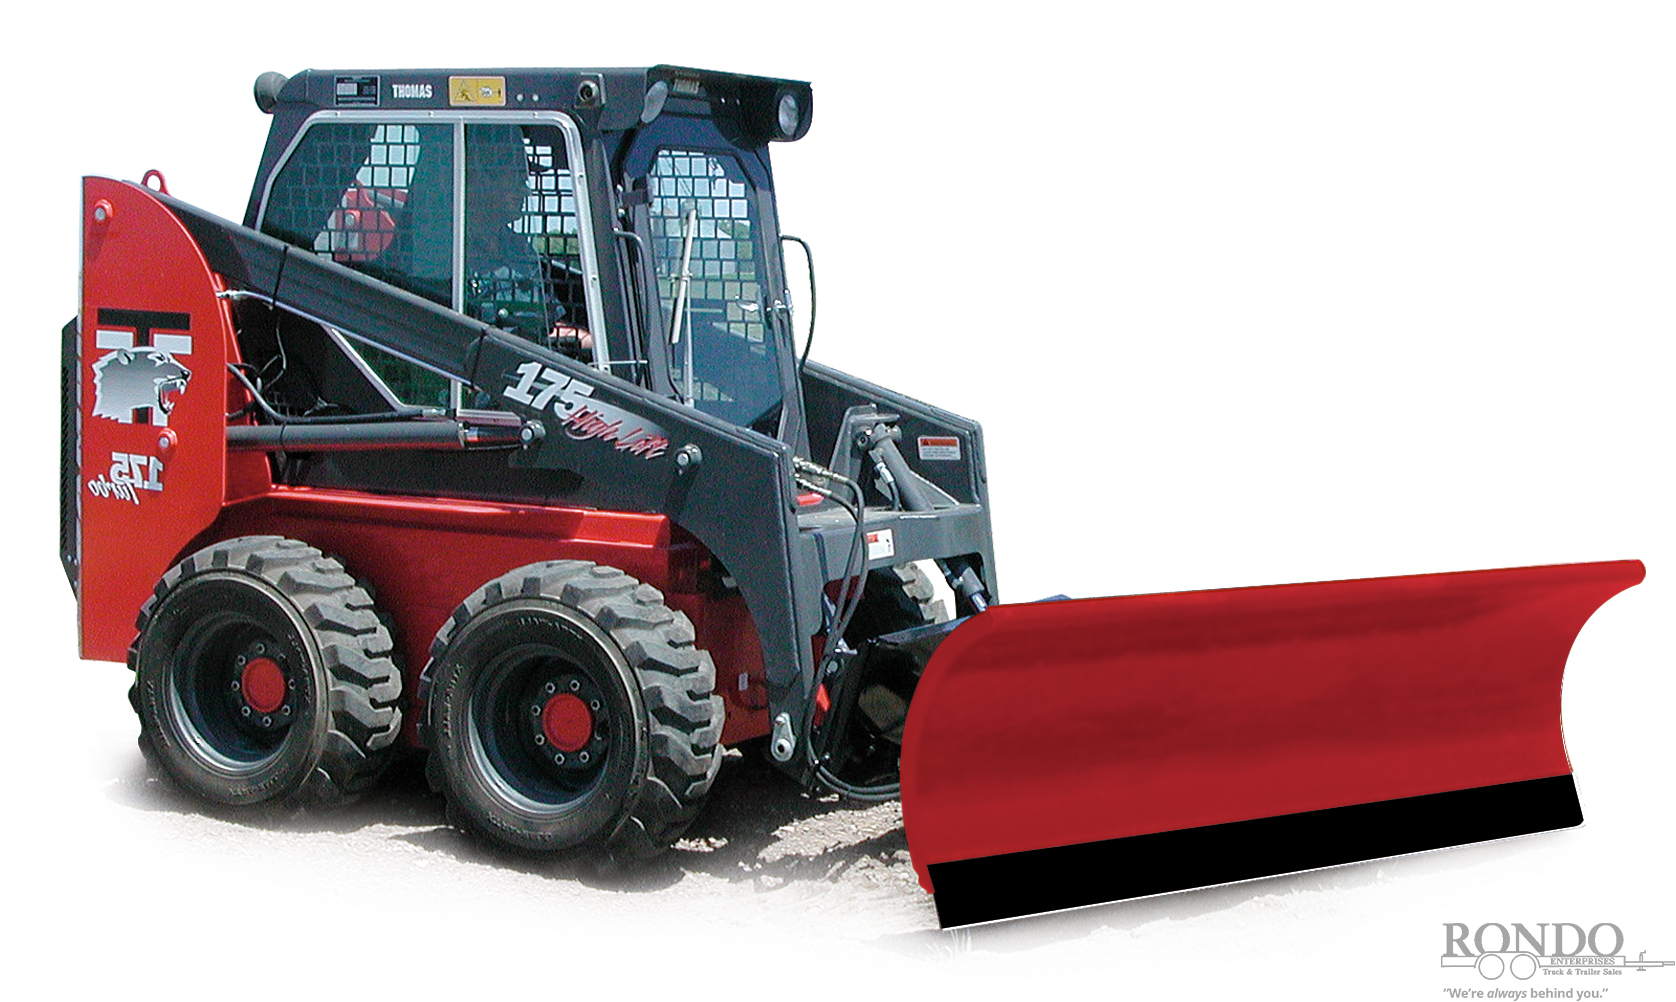 Hiniker 2285 Loader and Skid Steer Attachment